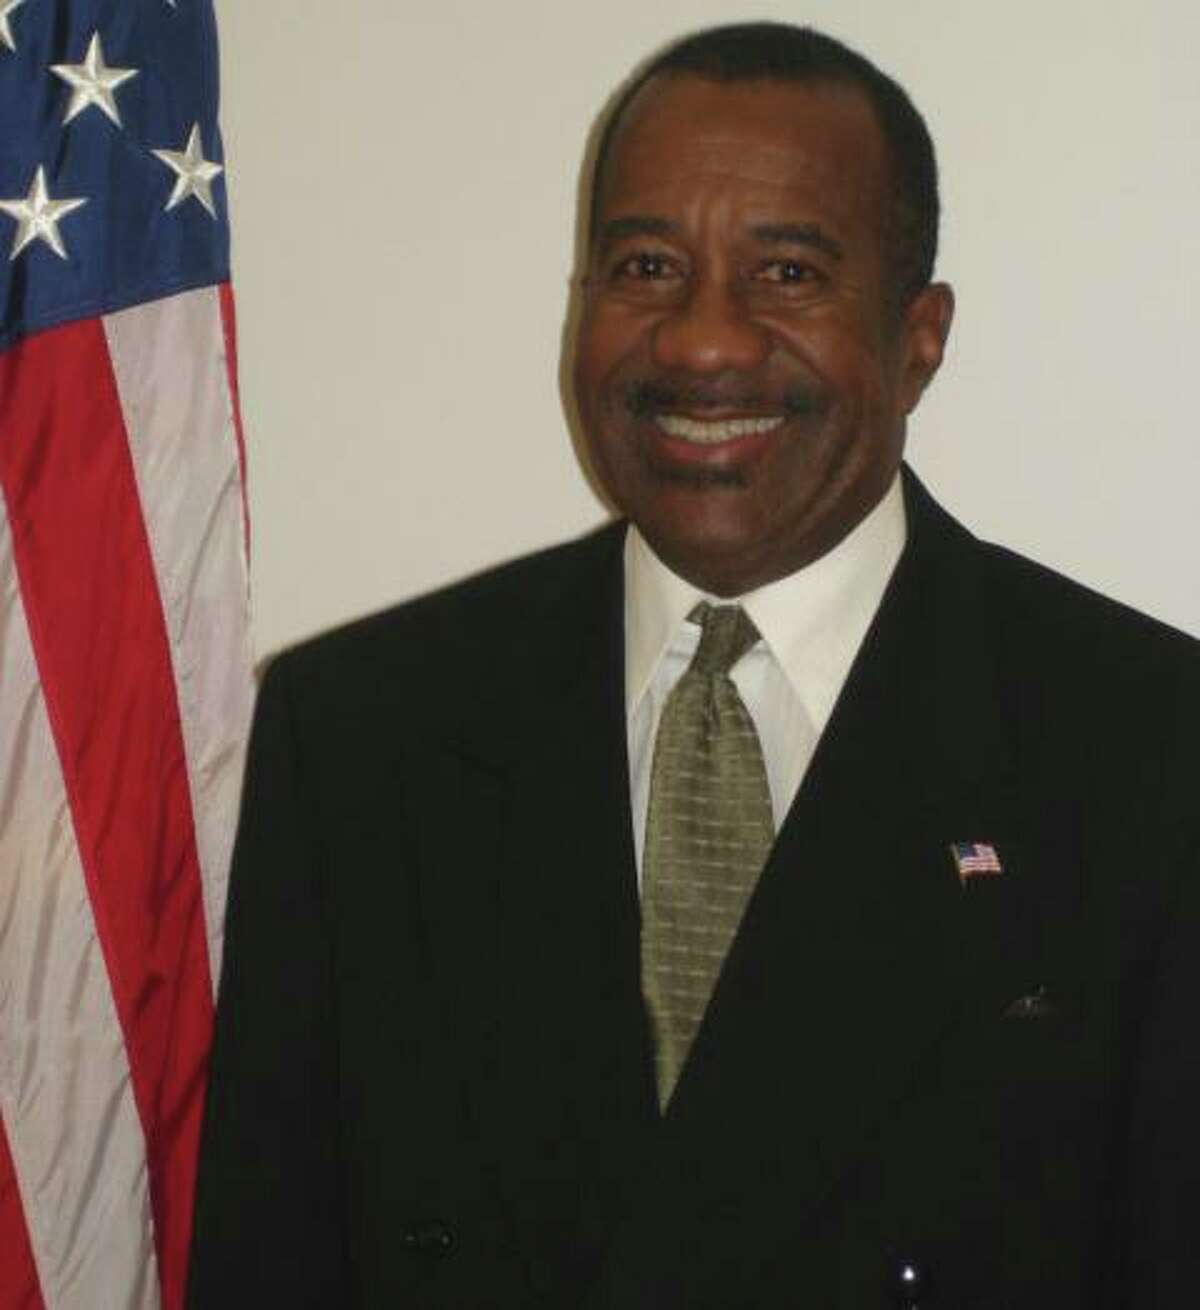 Texas Parkway resident Rodney Griffin was appointed to the Missouri City Bond Exploratory Committee by the city of Missouri City Council on May 3, 2021.